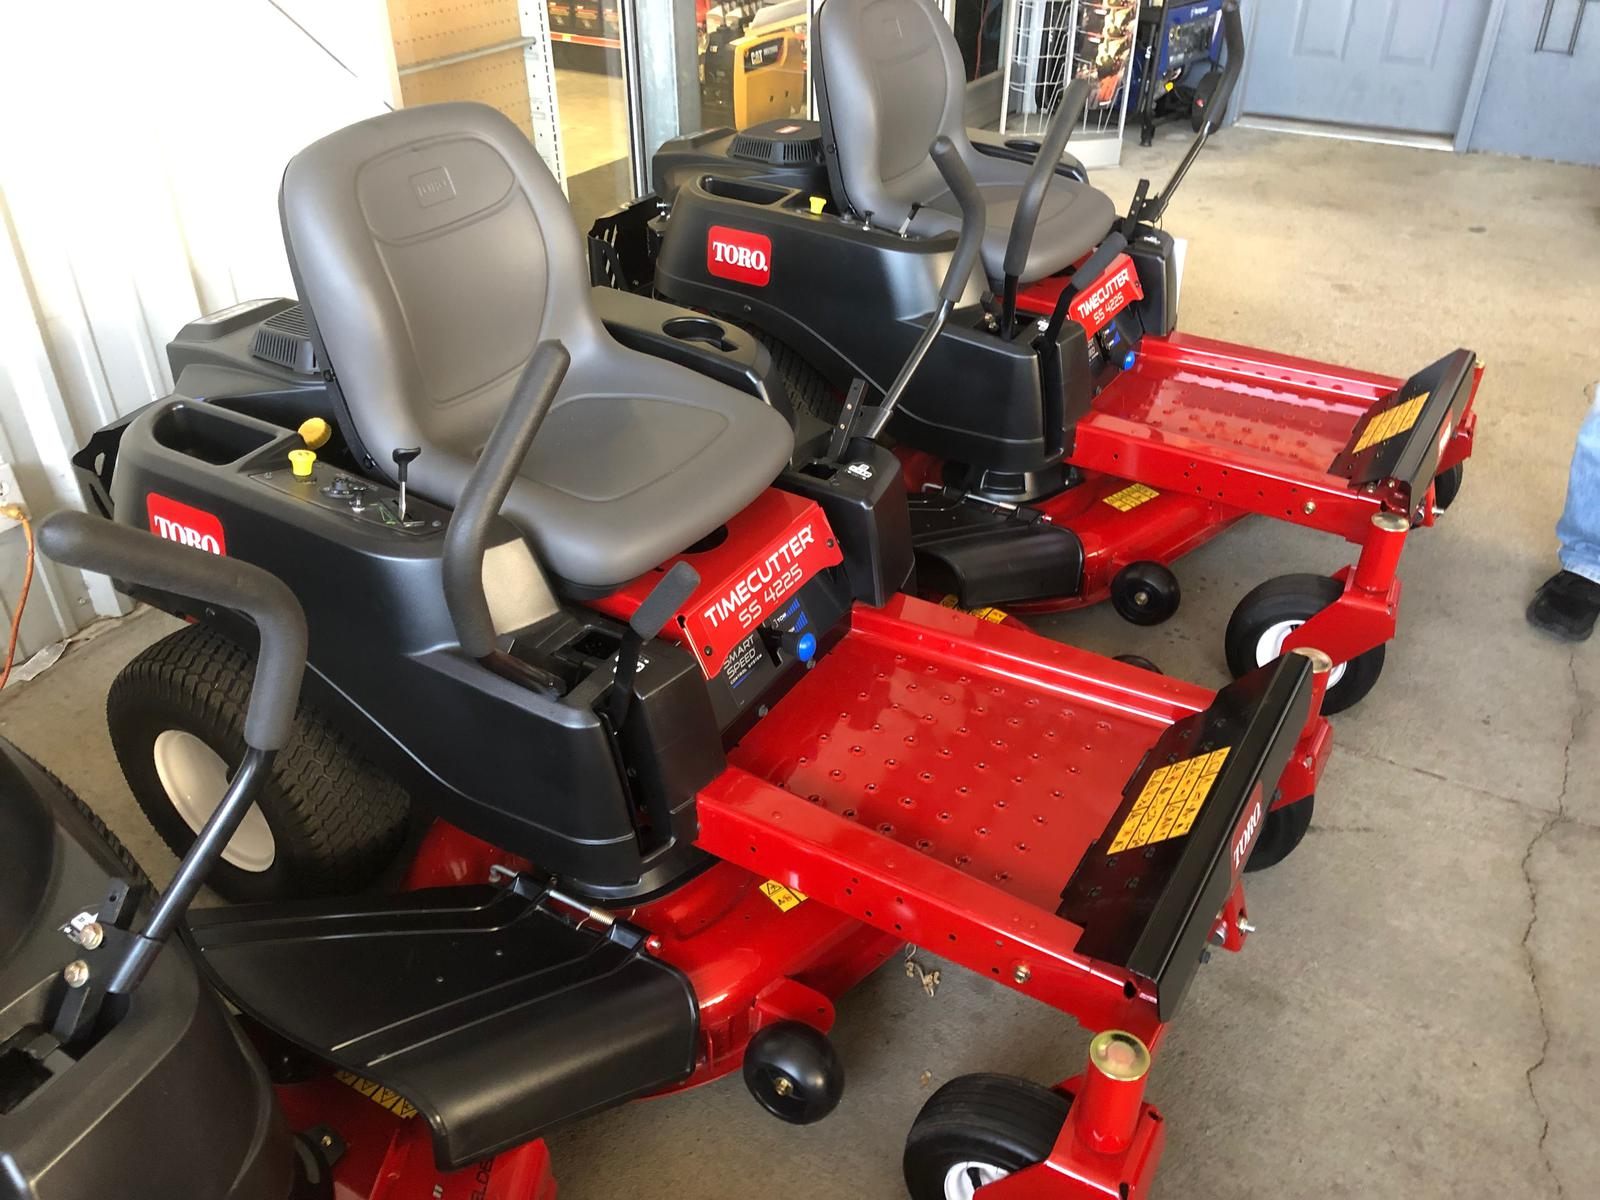 Inventory from Toro Hudson's Hardware & Outdoor Equipment